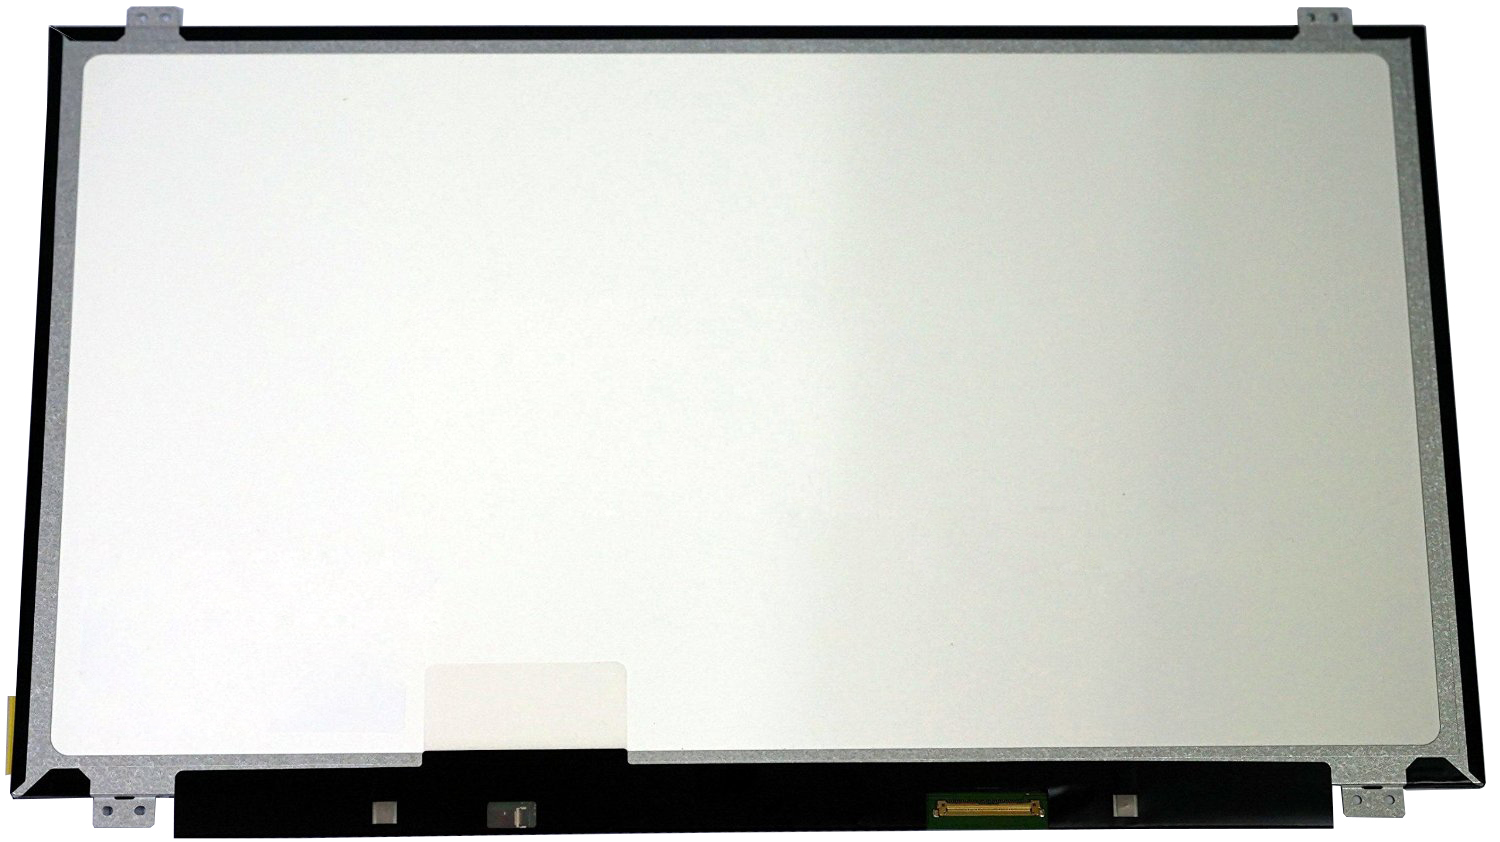 QuYing Laptop LCD SCREEN for Acer ASPIRE V5-552 V5-552G V5-582P V5-582PG V7-582P V7-582PG E5-522 SERIES(15.6 1366x768 30pin) lp116wh2 m116nwr1 ltn116at02 n116bge lb1 b116xw03 v 0 n116bge l41 n116bge lb1 ltn116at04 claa116wa03a b116xw01slim lcd